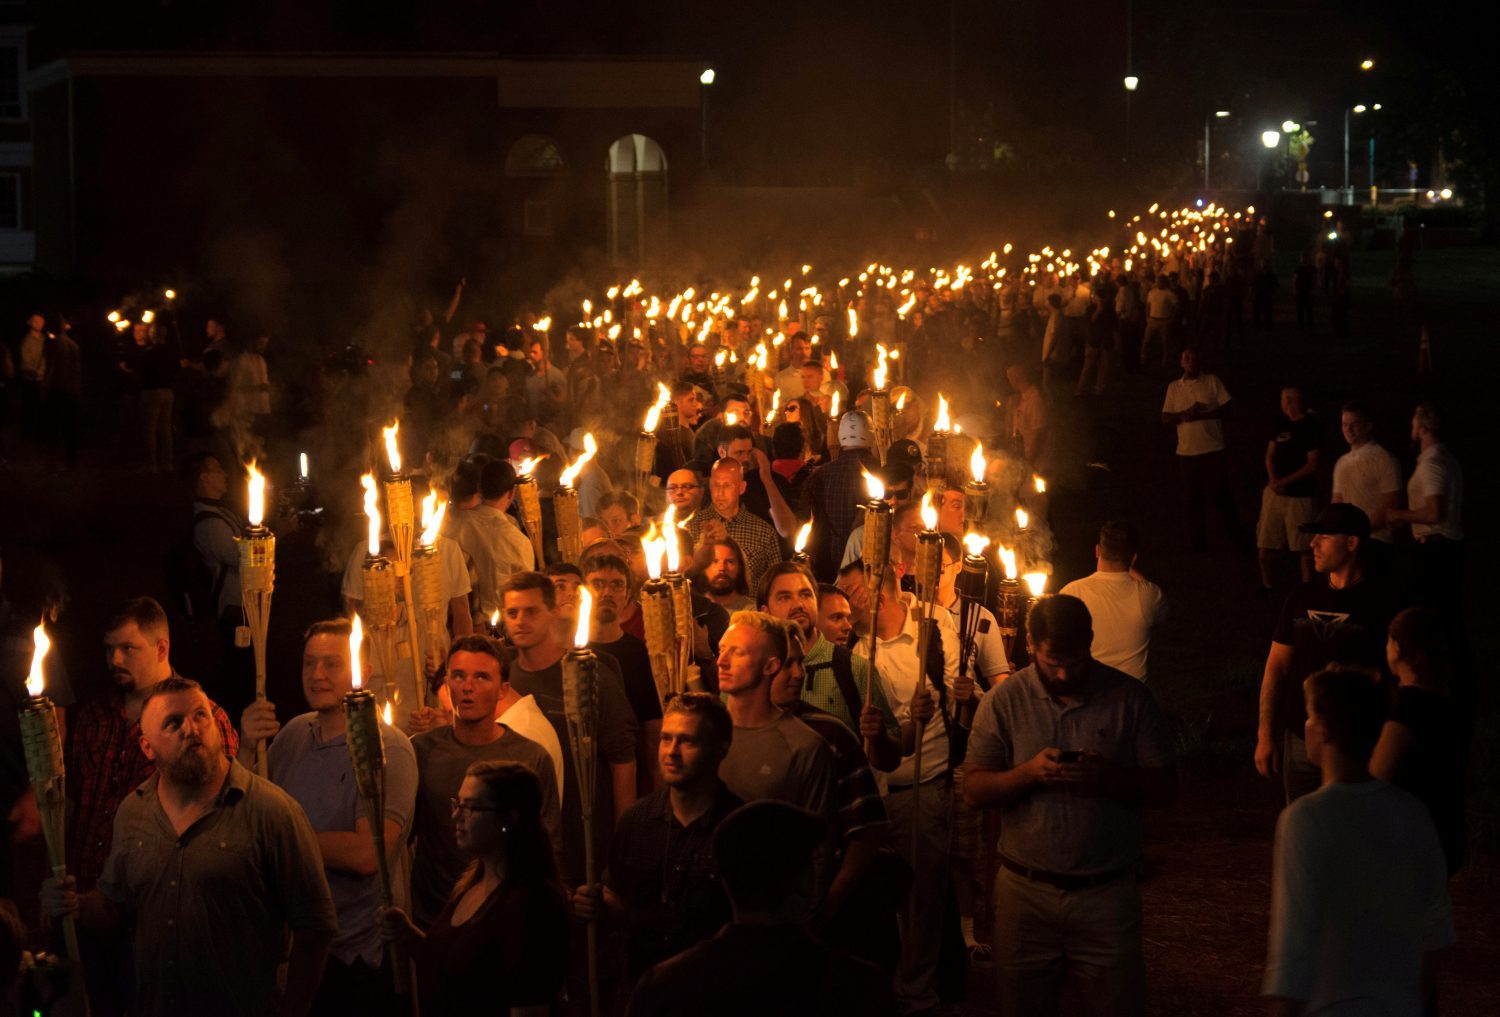 White nationalists carry torches on the grounds of the University of Virginia, on the eve of a planned Unite The Right rally in Charlottesville, Virginia, U.S. August 11, 2017. Picture taken August 11, 2017. Photo by Alejandro Alvarez/News2Share via REUTERS